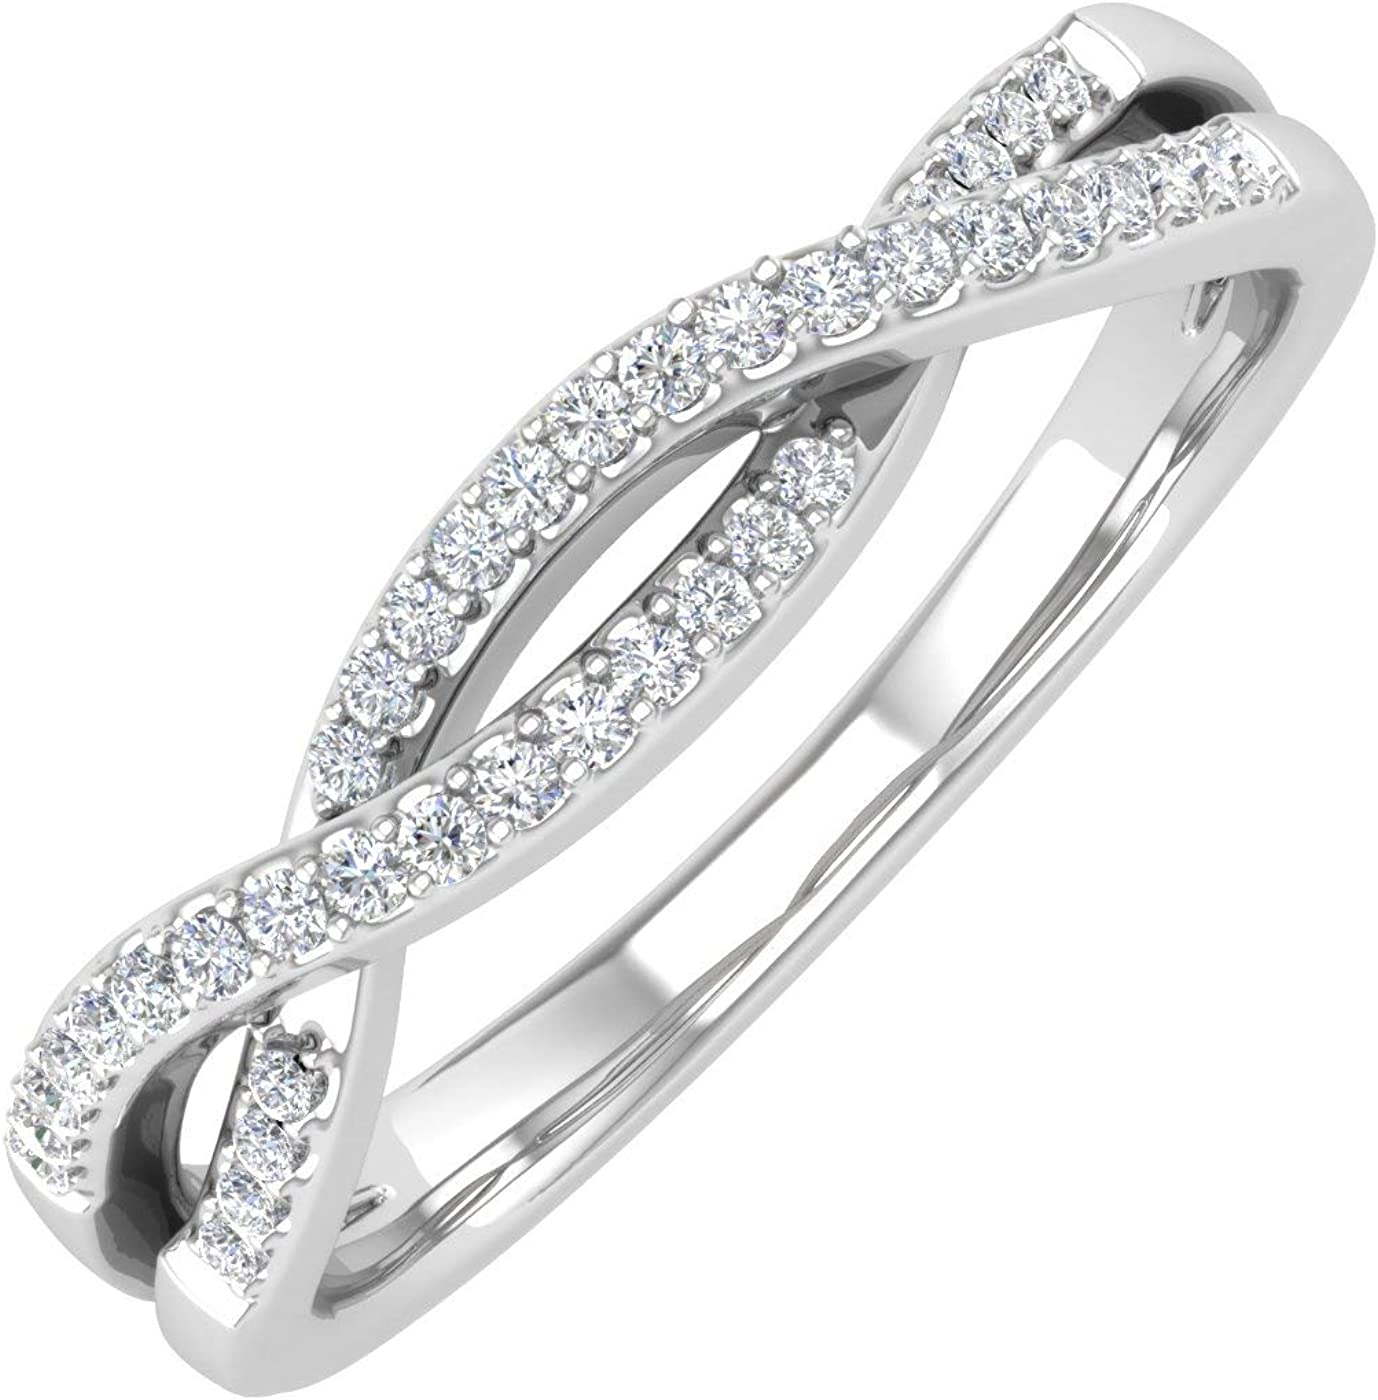 10K Gold Diamond Twisted 70% OFF Outlet Wedding Band Ring Carat OFFicial 0.13